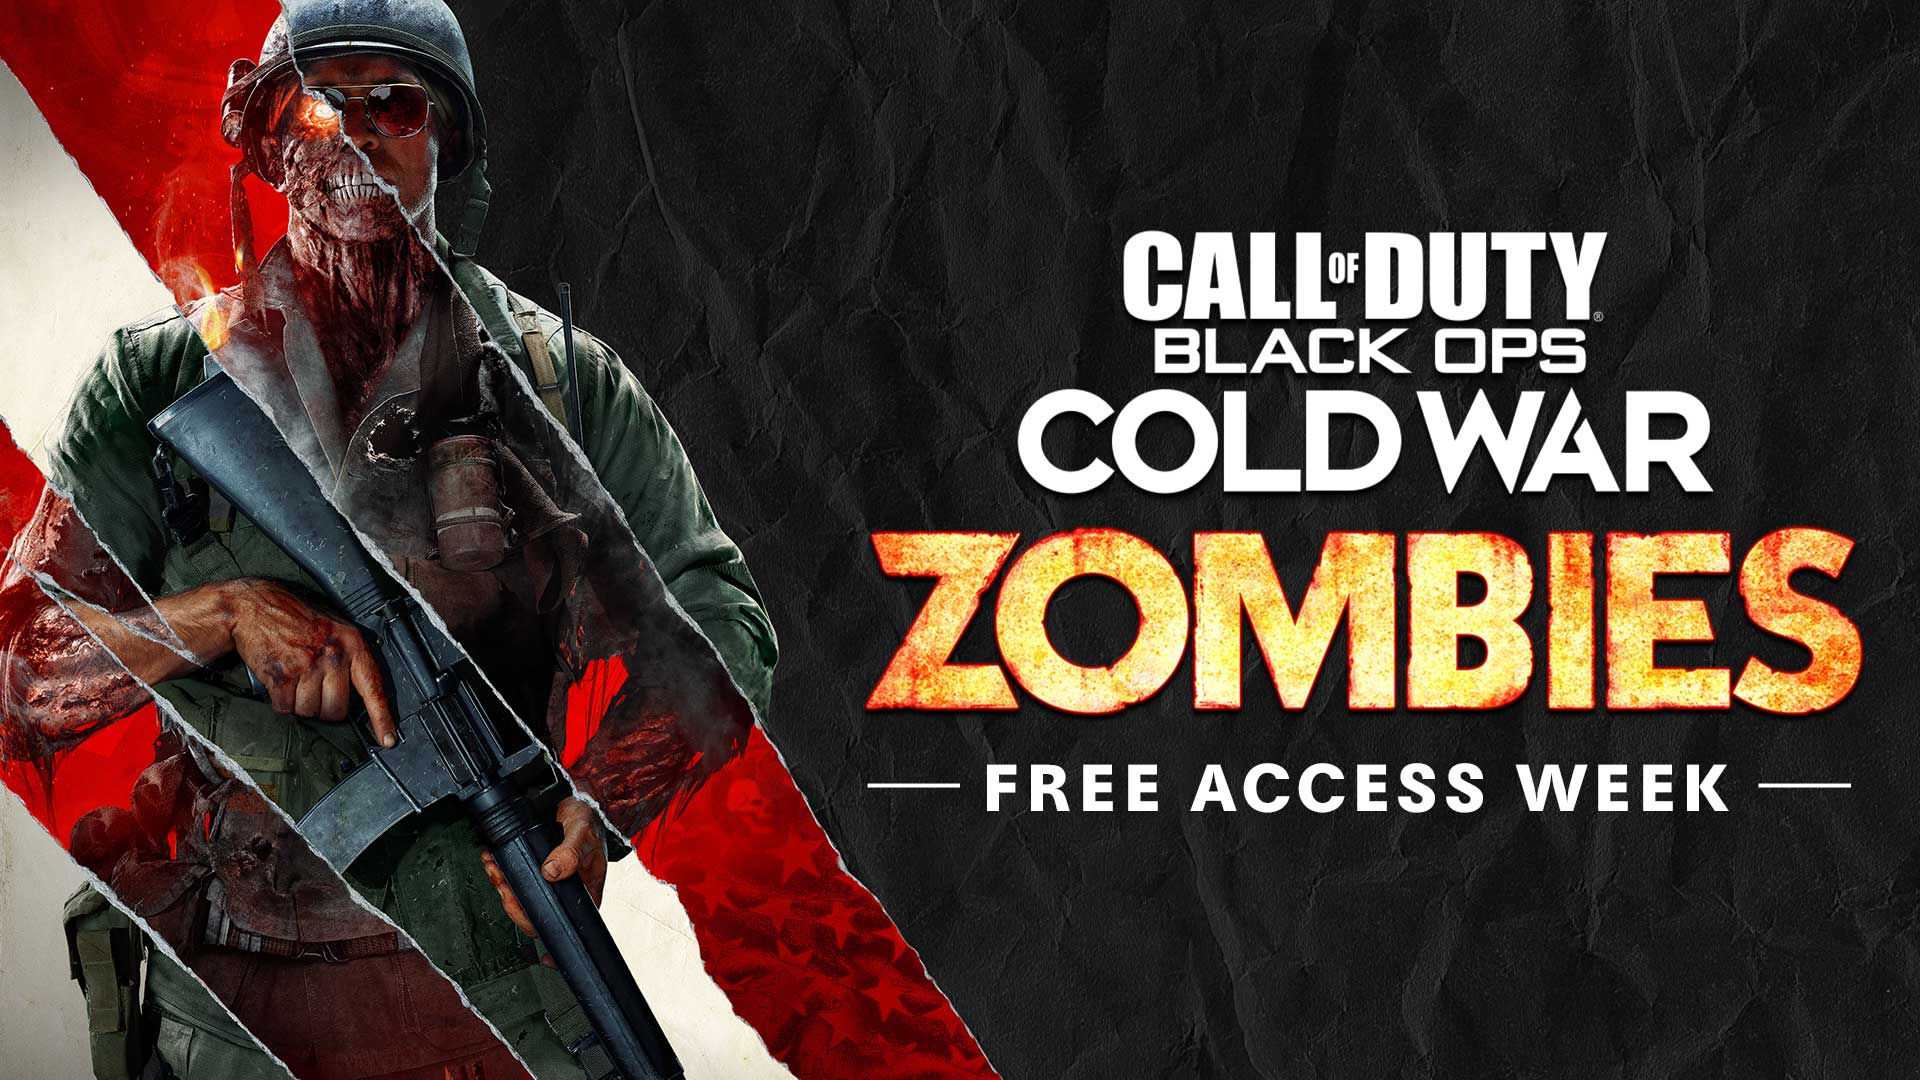 Experience the Next Chapter of Zombies Through Black Ops Cold War Zombies Free Access Week